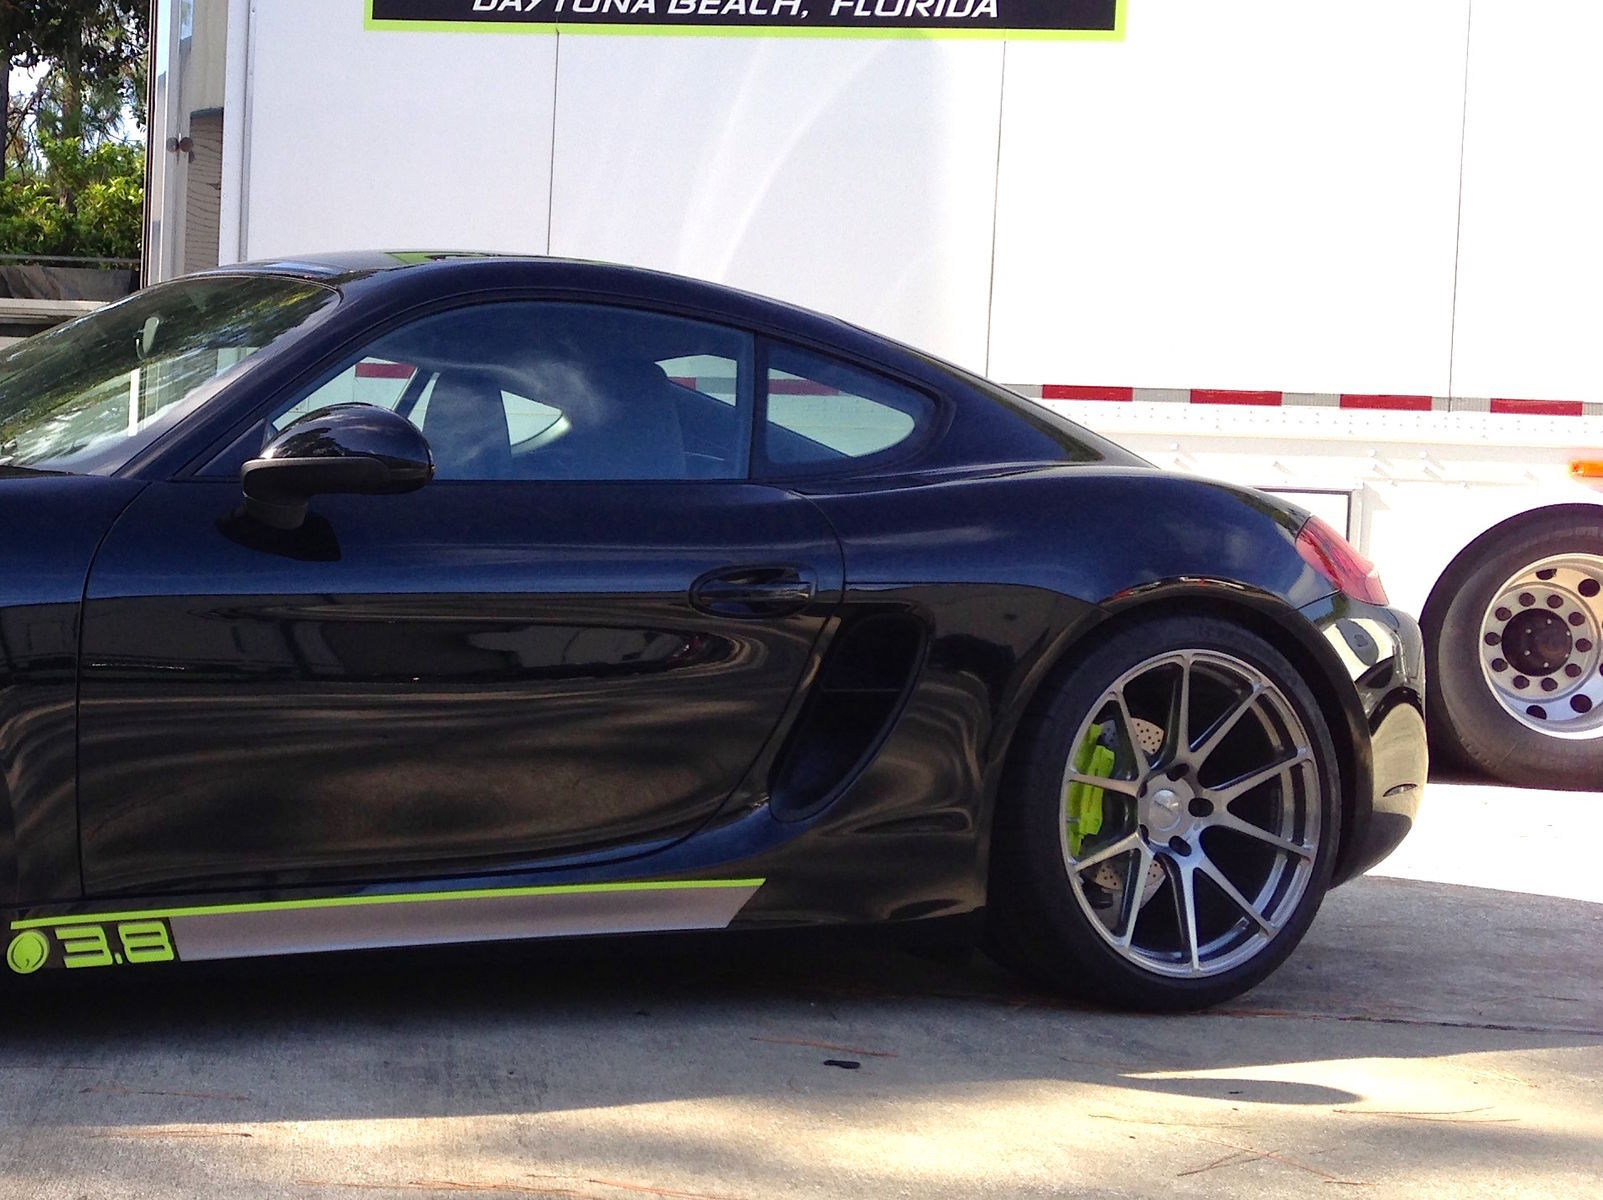 2014 Porsche Cayman | Daytona Special Porsche Cayman on GA1R Wheels